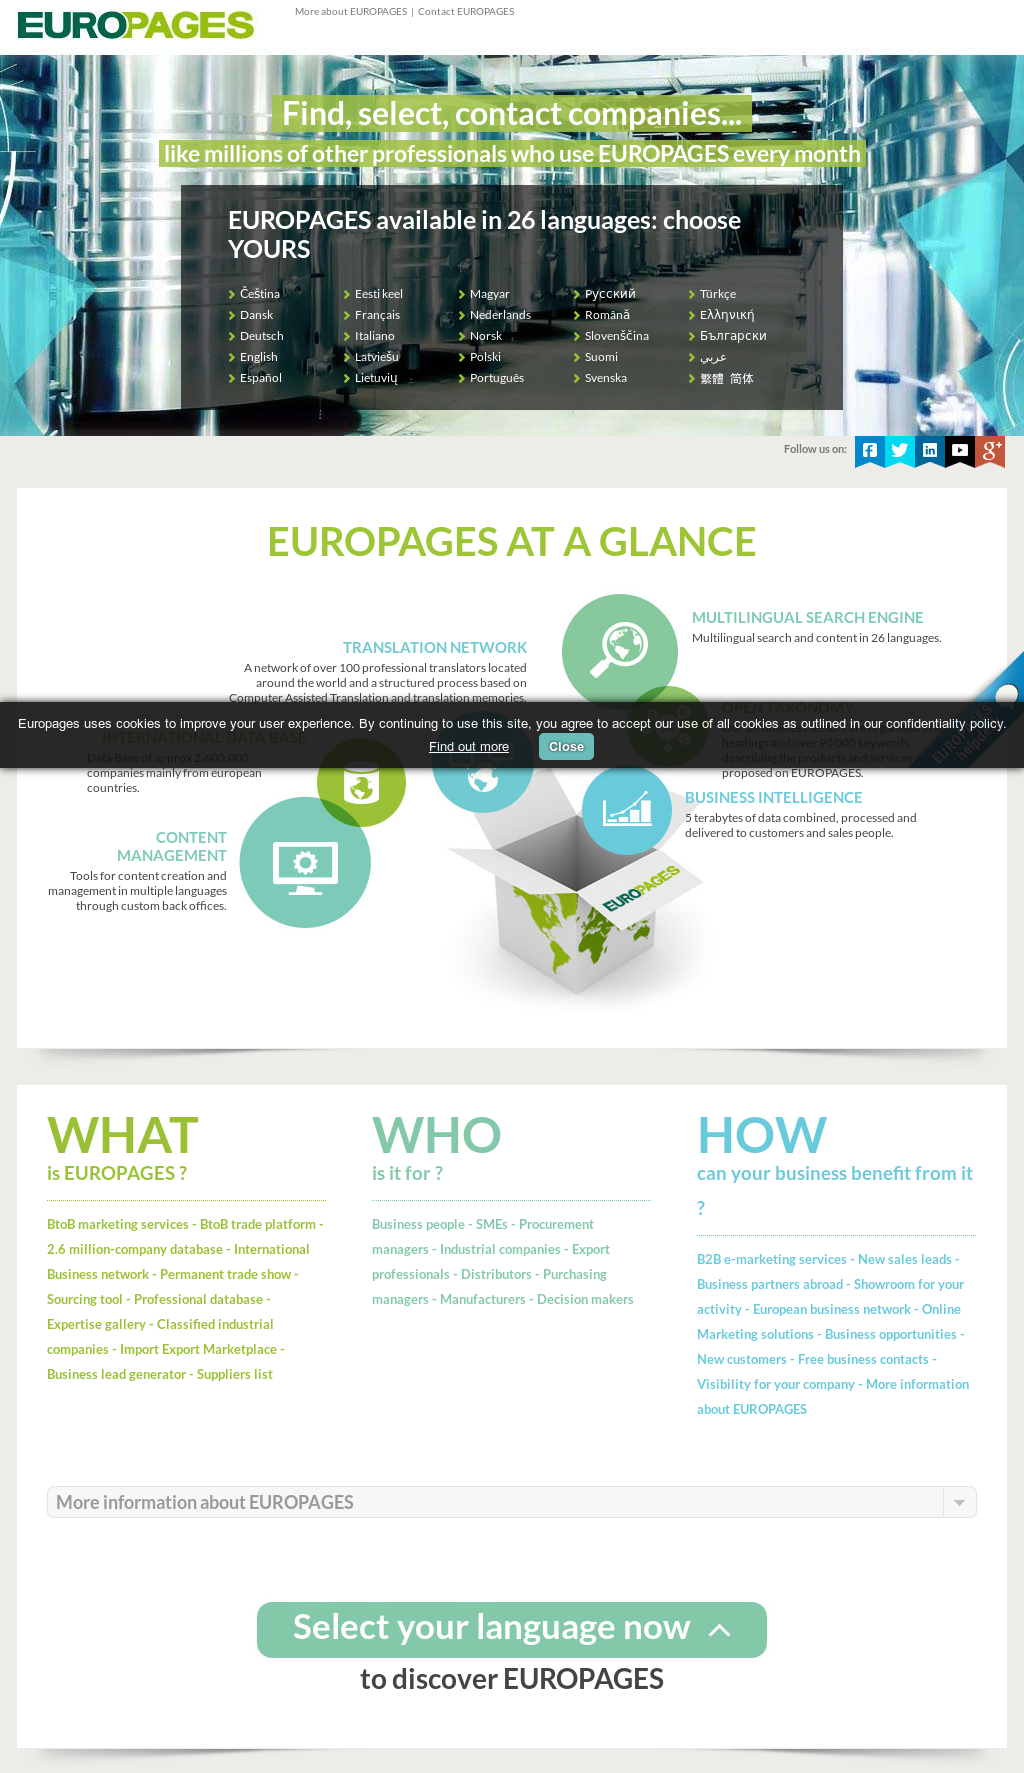 Europages Competitors, Revenue and Employees - Owler Company Profile